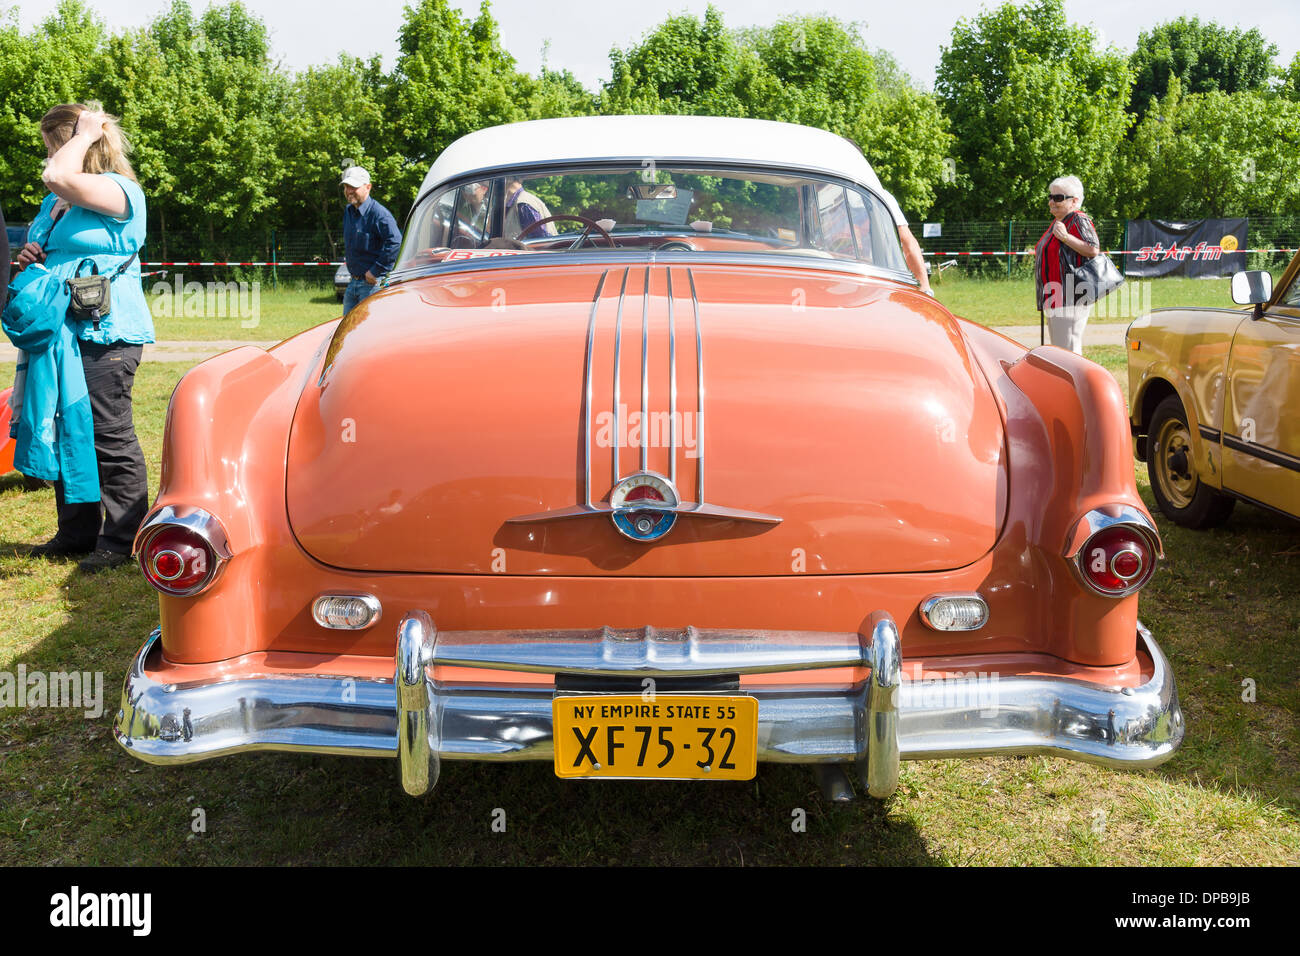 Pontiac Star Chief Stock Photos Images 1954 Catalina Two Door Coupe First Generation Rear View